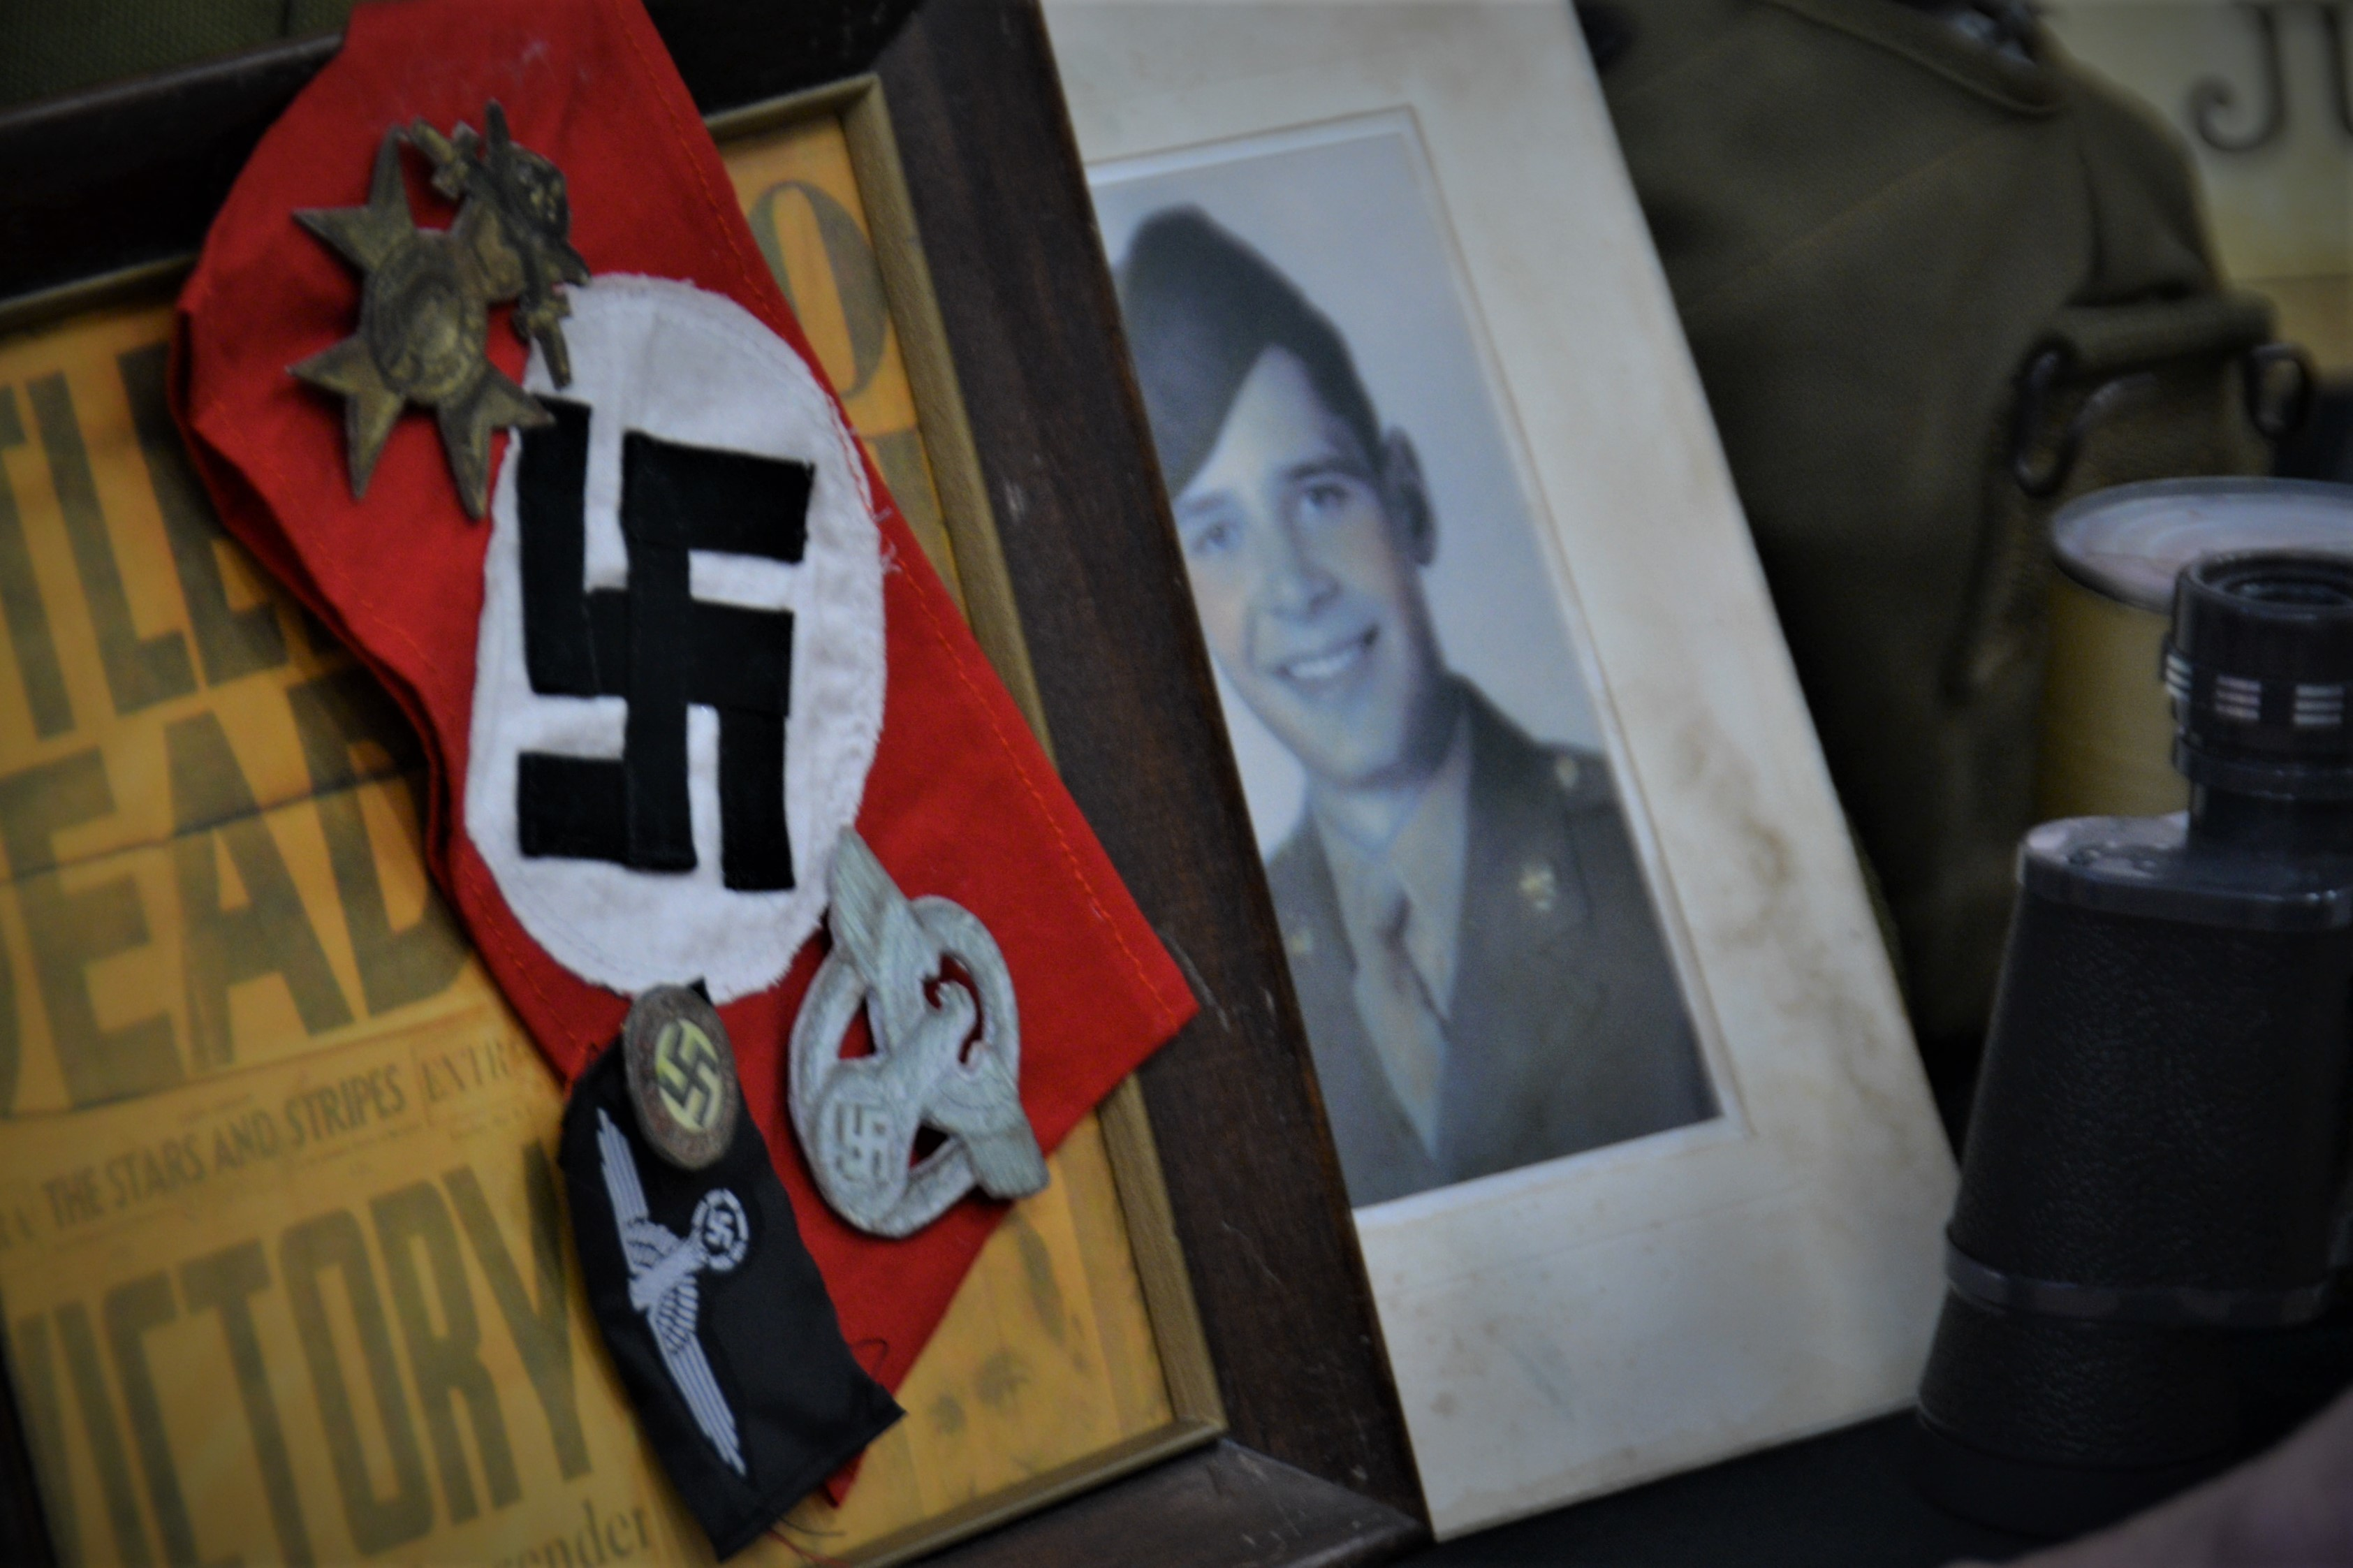 Holocaust observance at Norfolk District solemnly reinforces